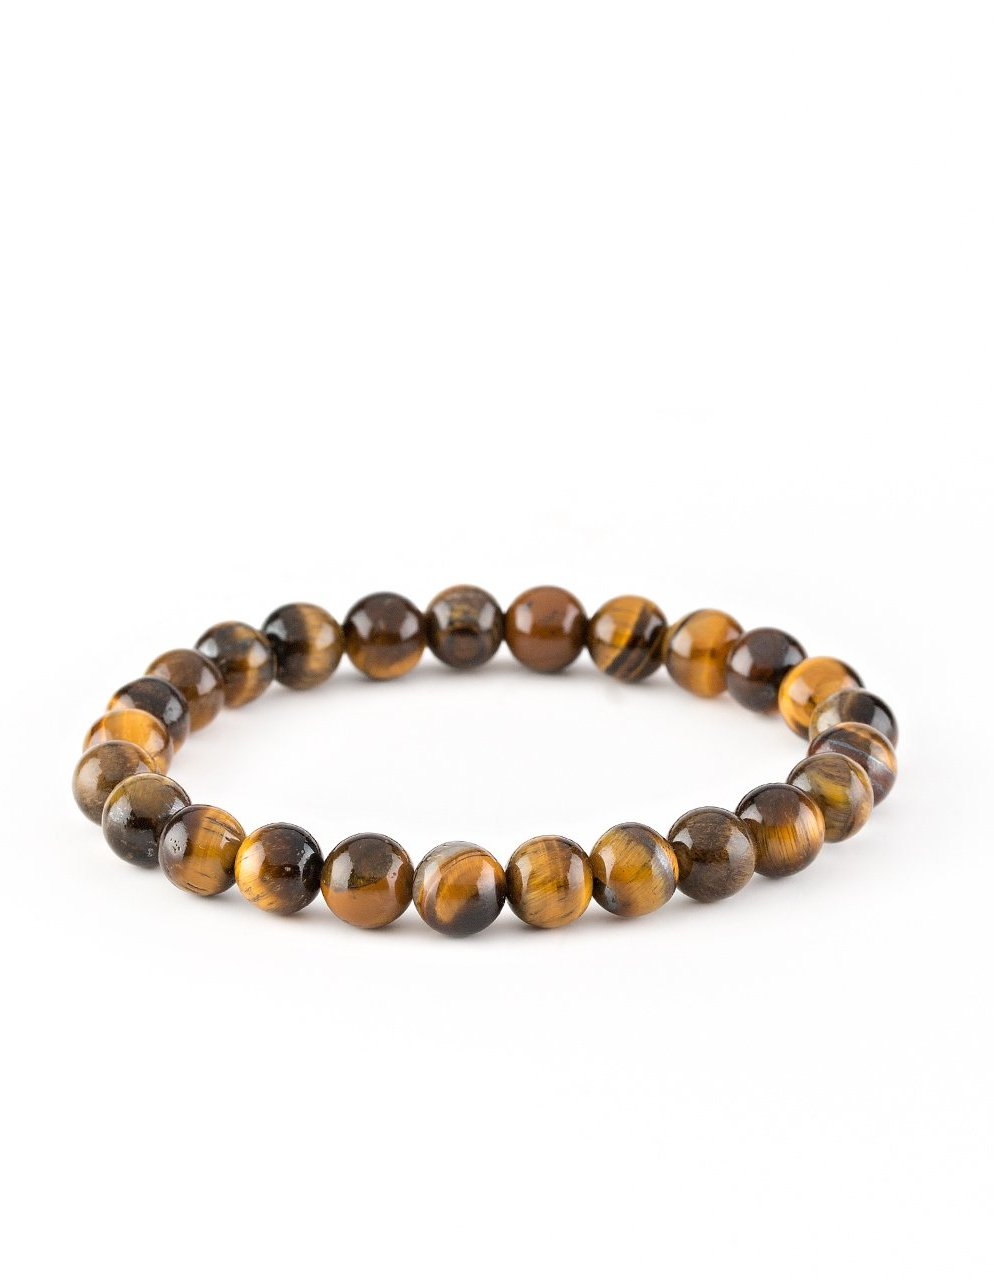 "Paparazzi Accessories - Paparazzi ""Centered"" Brown Tigers Eye Stone Bracelet - Bracelets"